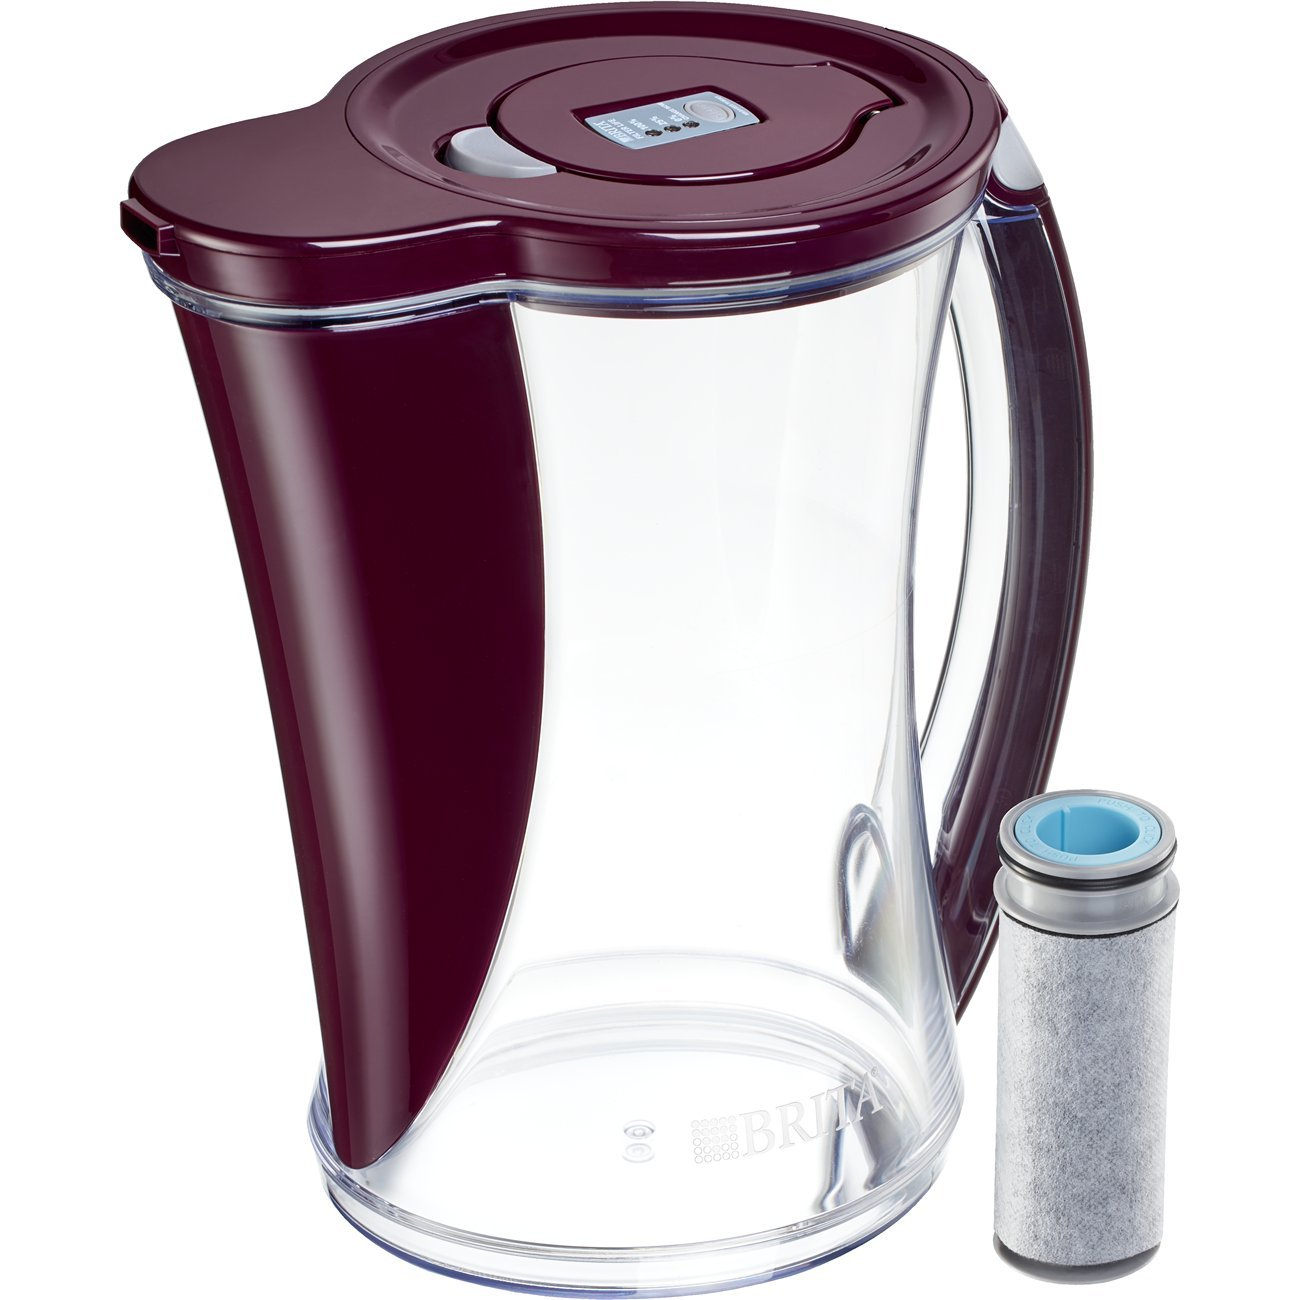 Brita 12 Cup Stream Filter As You Pour Water Pitcher with 1 Filter, Cascade - BPA Free – Bordeaux